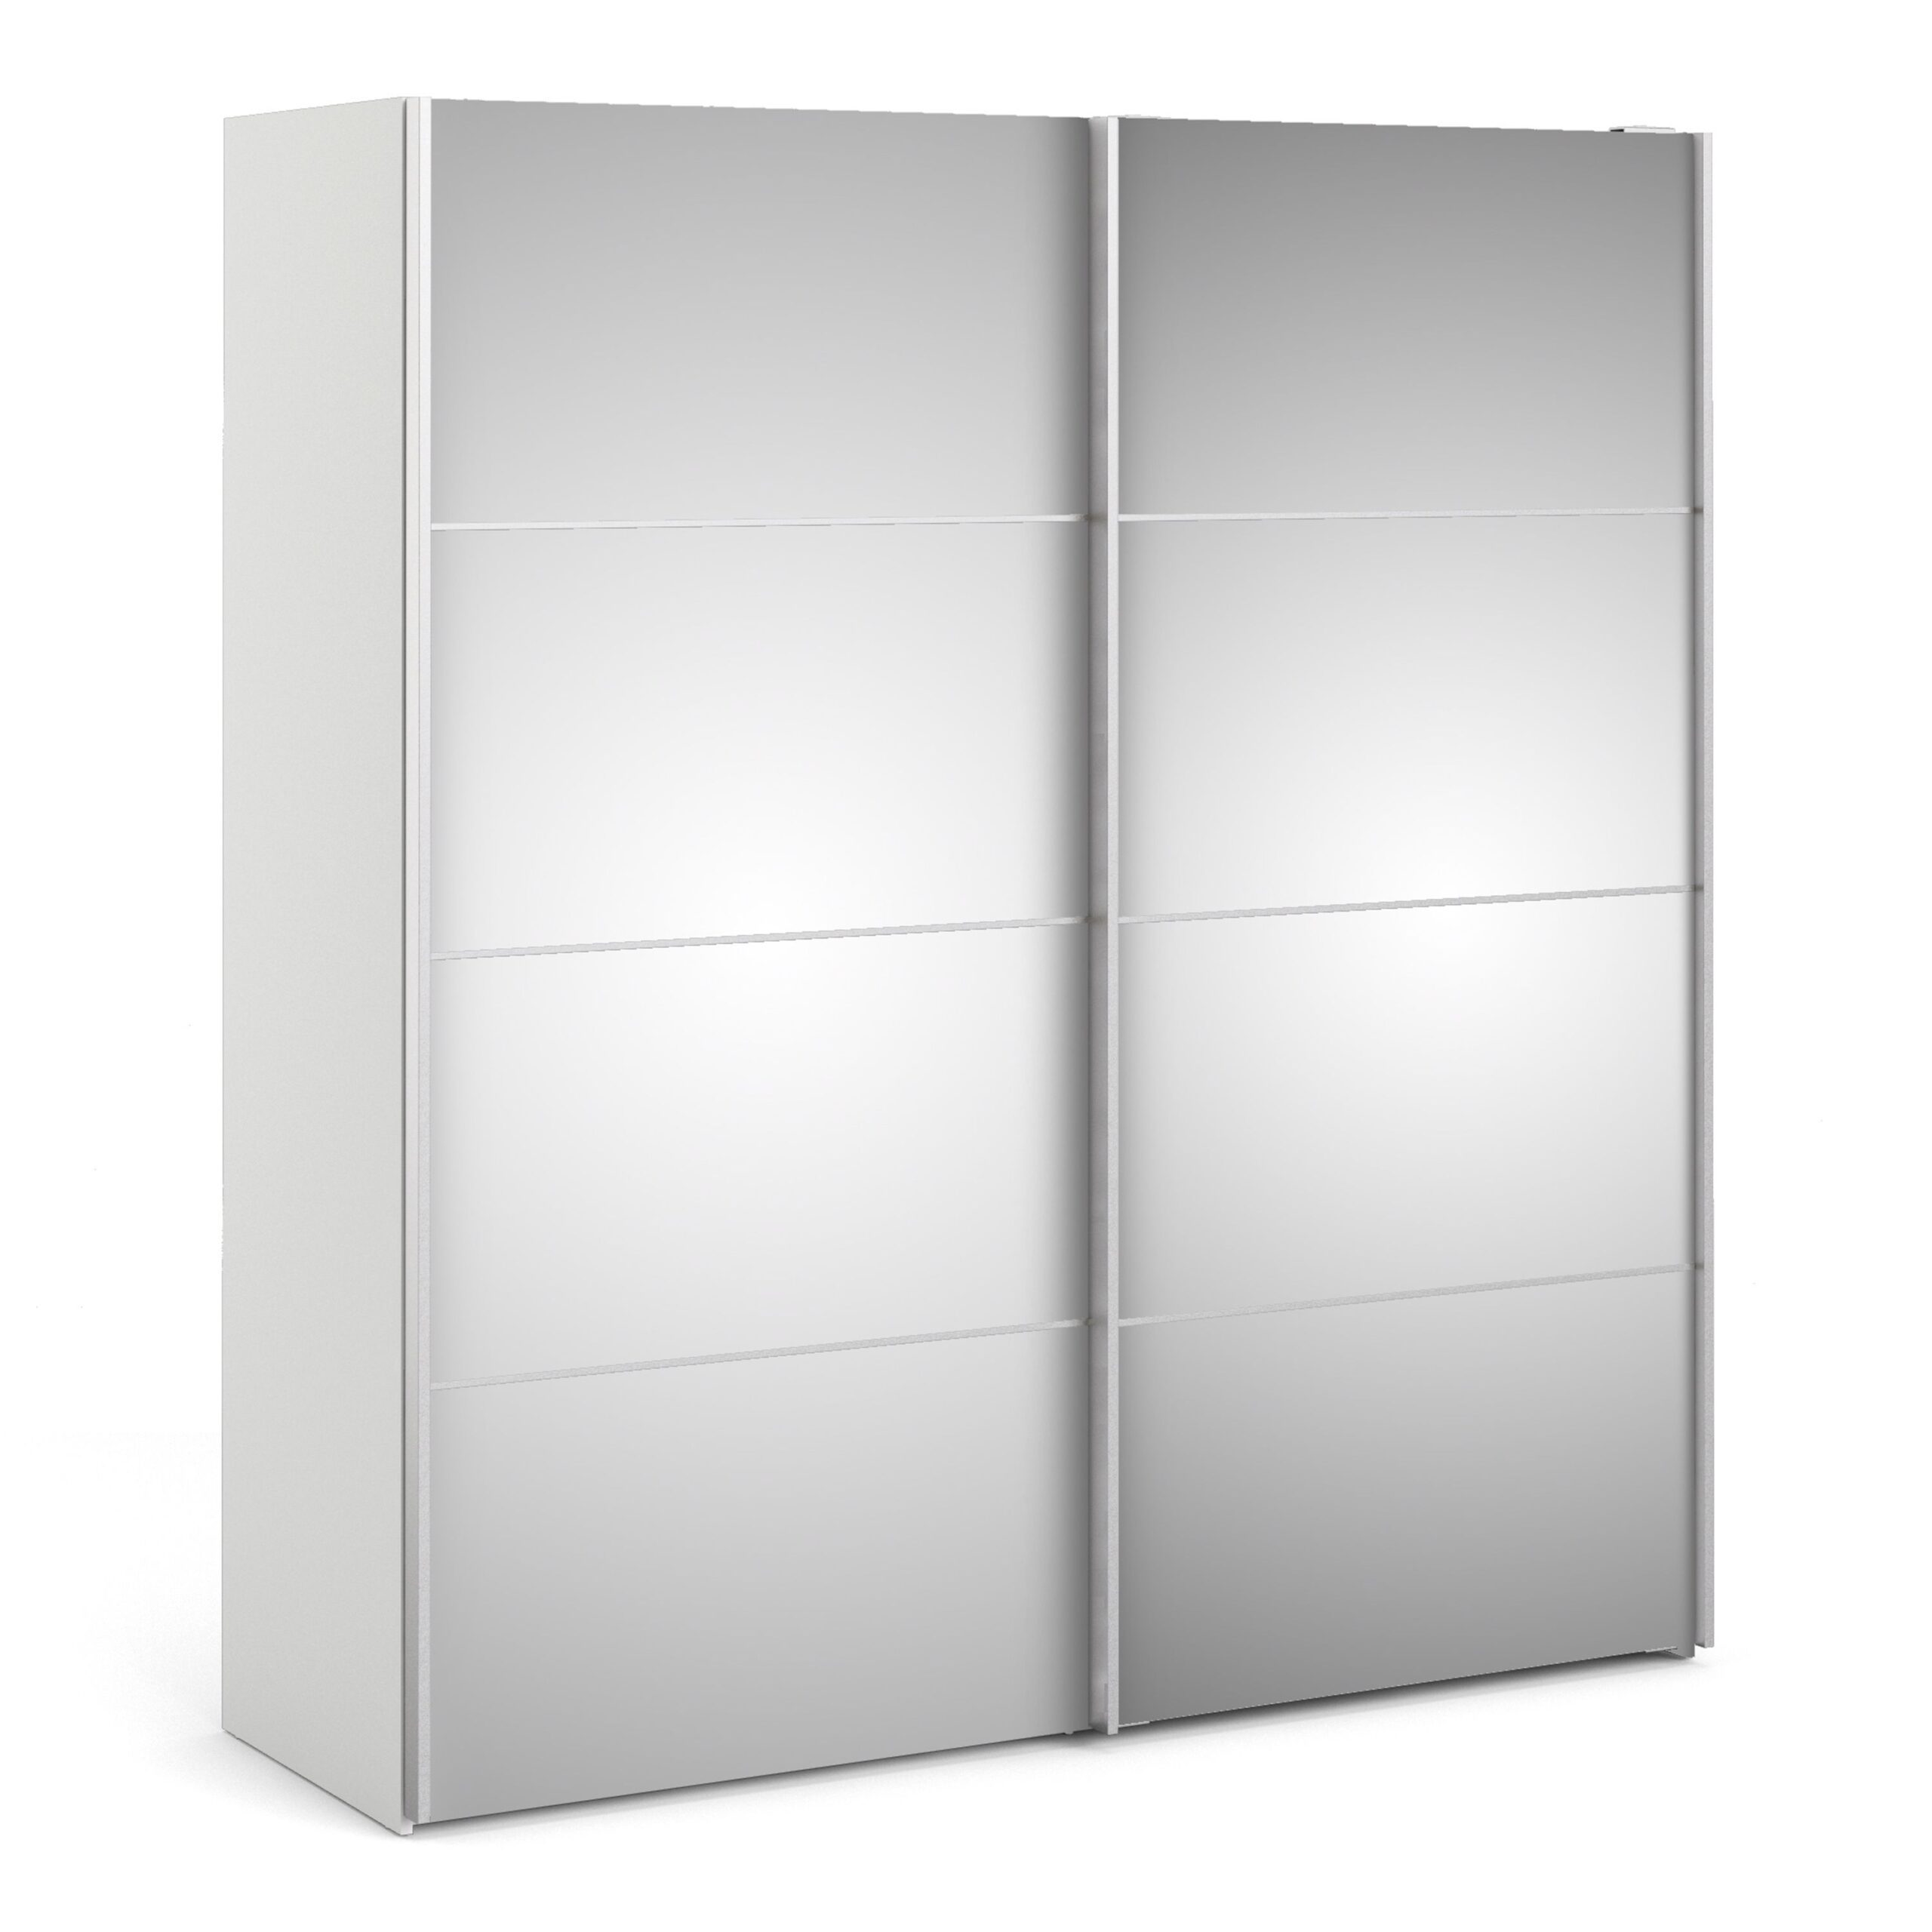 Phillipe Sliding Wardrobe 180cm In White With Mirror Doors With Two Shelves